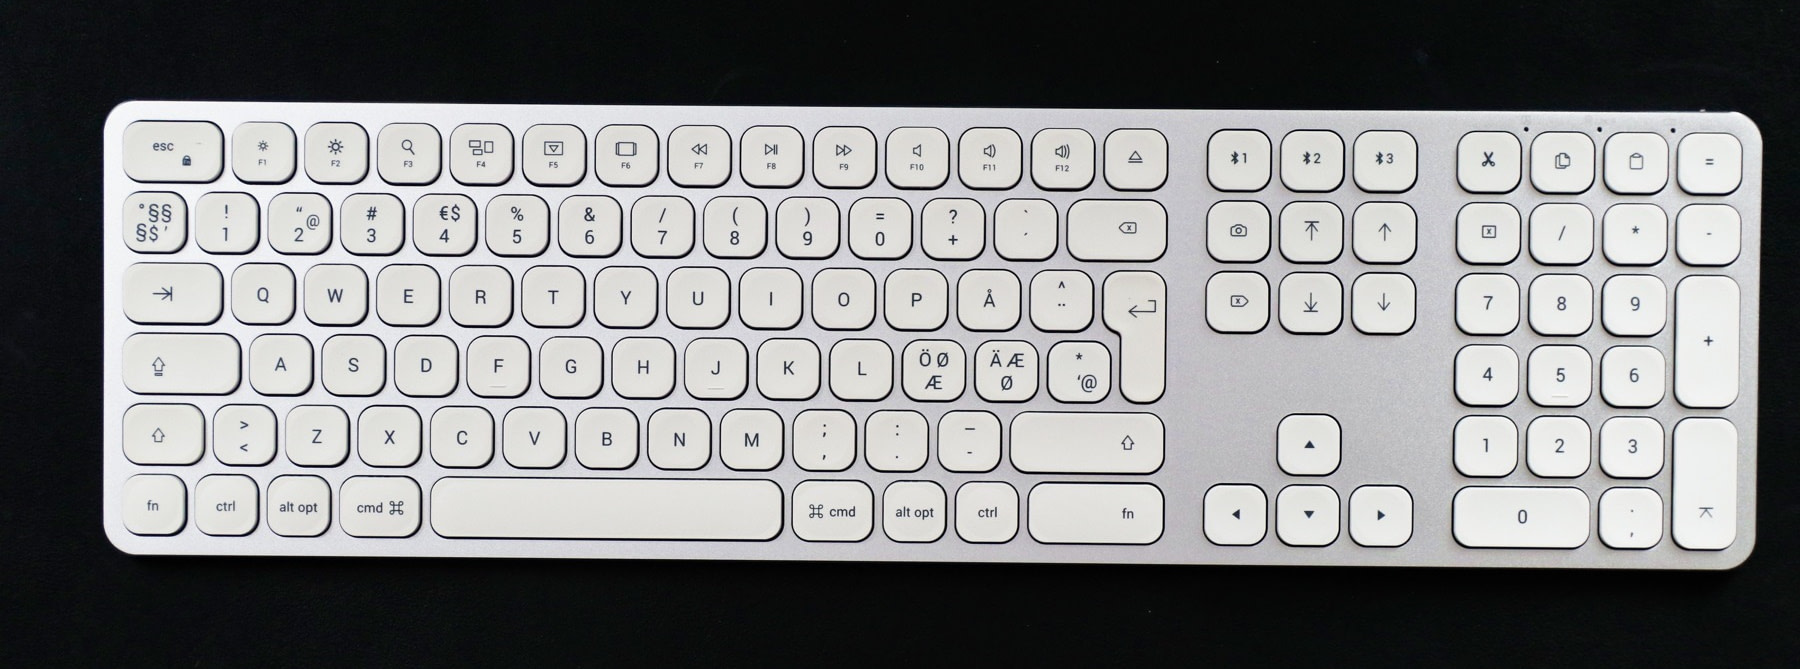 best mac keyboards: satechi